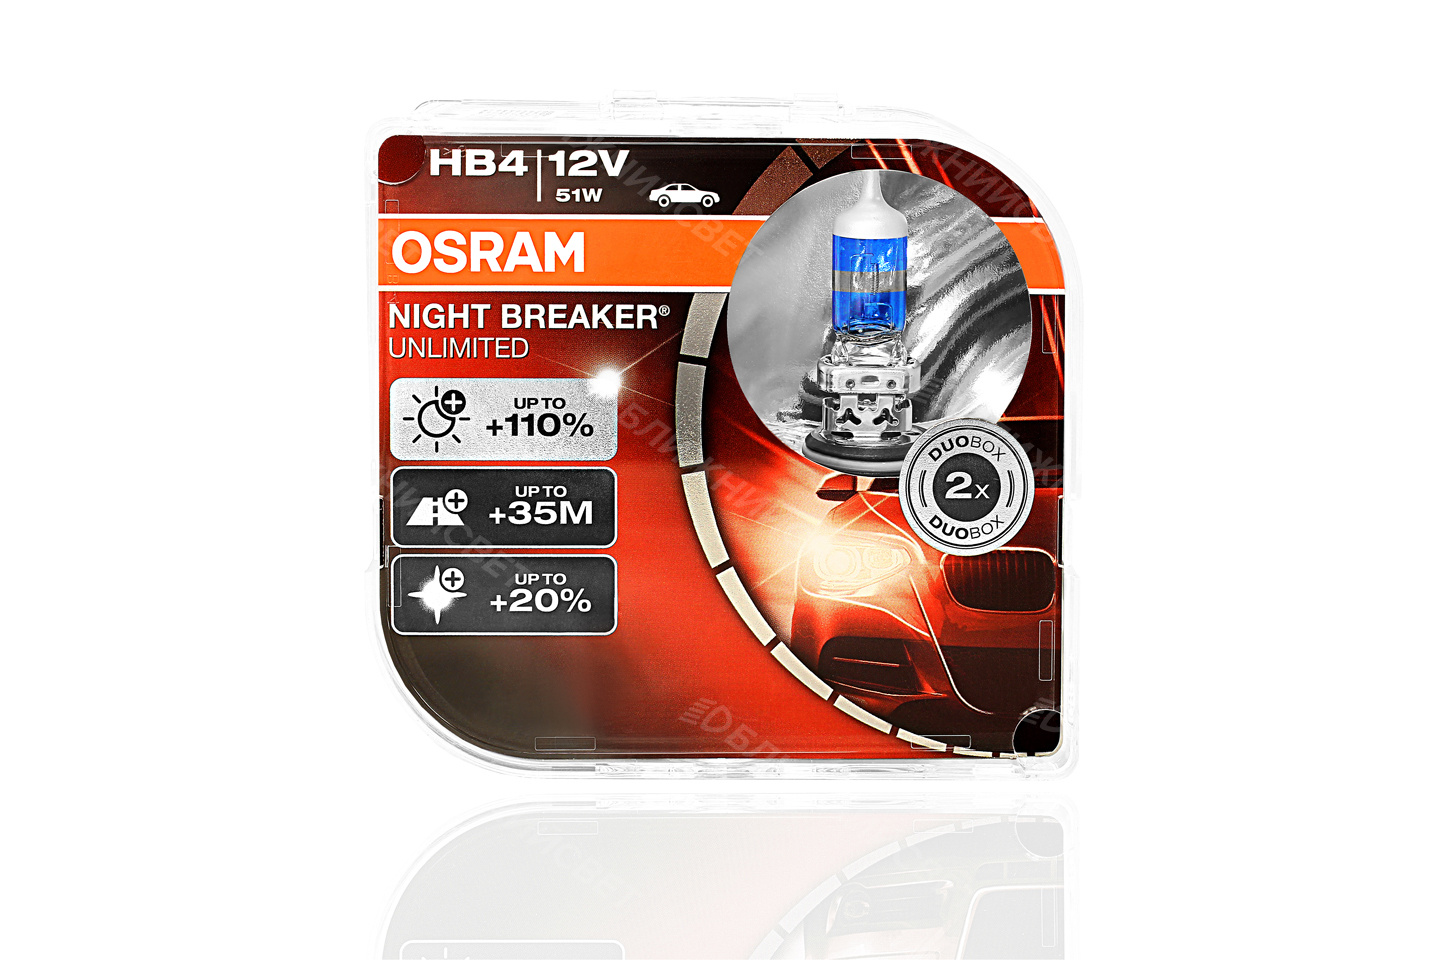 Фото Комплект галогенных автоламп OSRAM HB4 9006 NIGHT BREAKER UNLIMITED +110%света (12V,51W) 9006NBU-HCB артикул 9006NBU-HCB